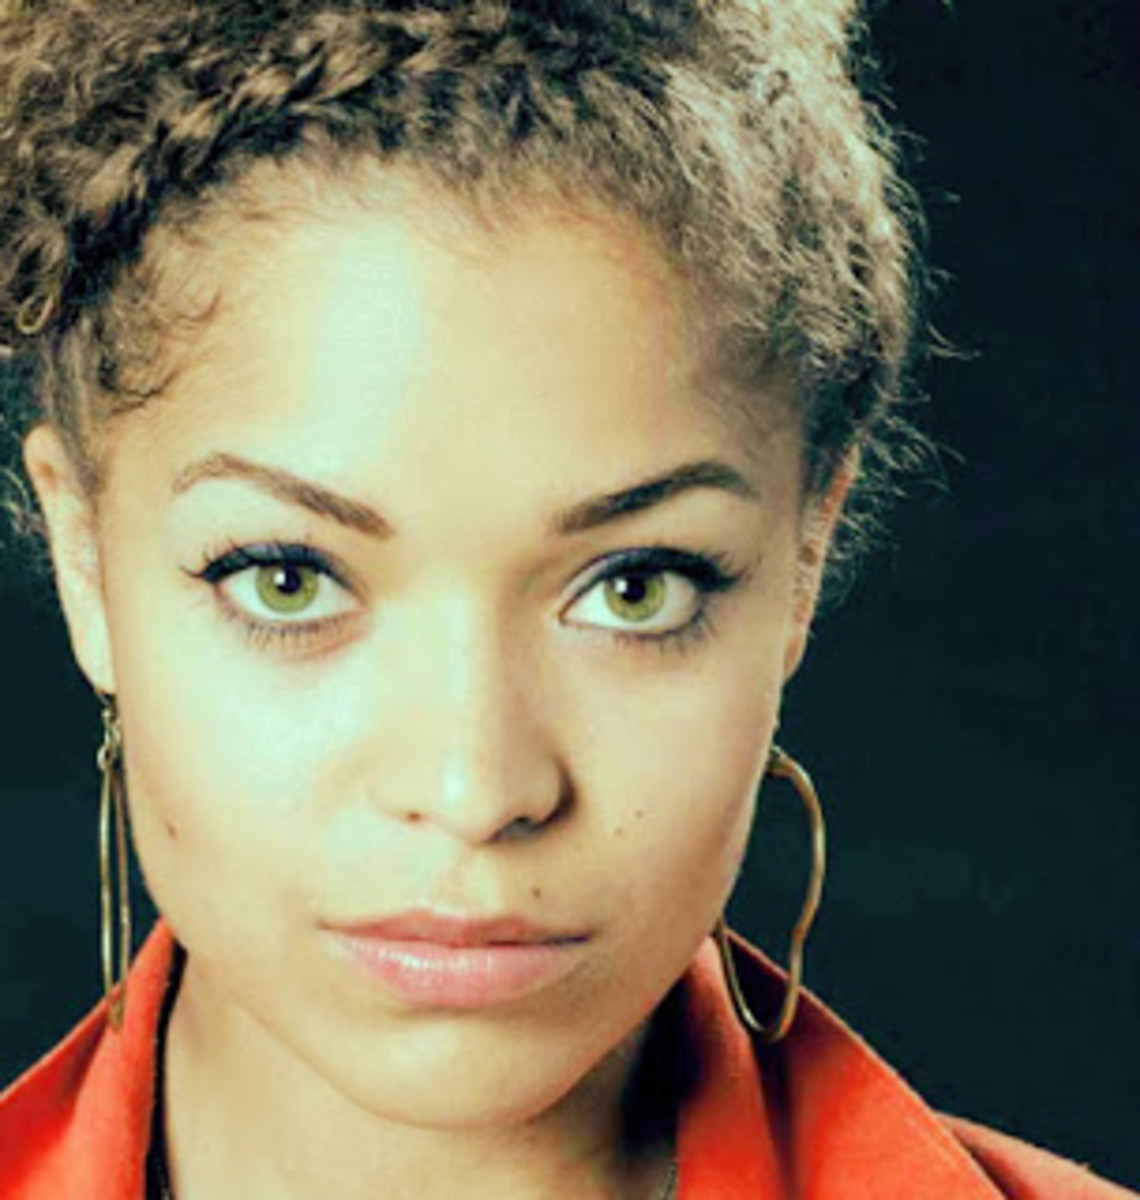 Antonia Thomas has green eyes naturally and she looks stunning. You can wear green contacts and look just as good.